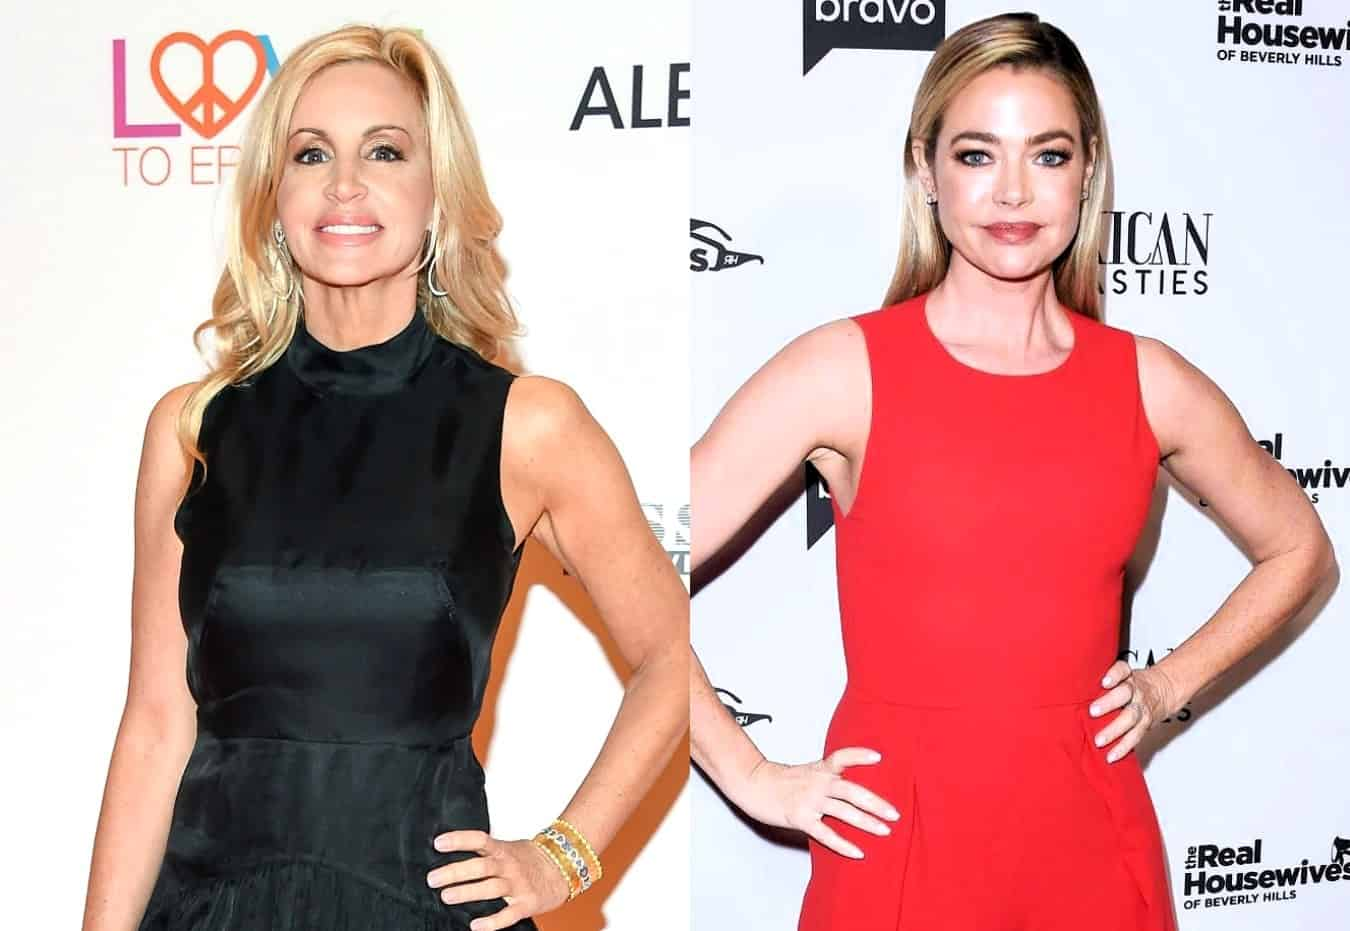 Camille Grammer Clarifies the Comment She Made About Race at RHOBH Reunion and Calls Out Denise Richards for Asking Her to Lunch After Suggesting She Made Racist Comments